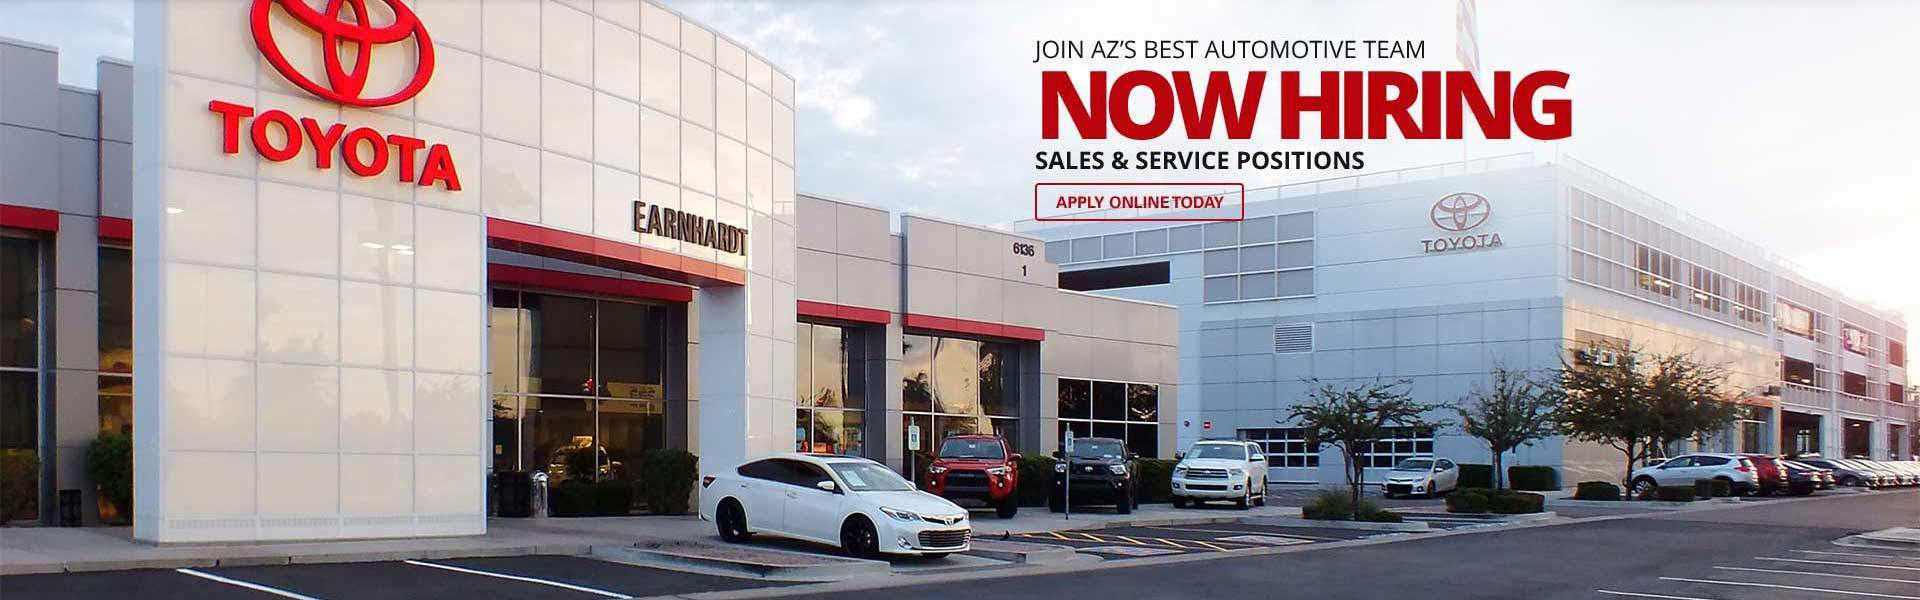 Charming Earnhardt Toyota Dealer Mesa AZ Serving Phoenix, Scottsdale, Tempe, Mesa,  Chandler And Gilbert | Arizona Toyota Dealership